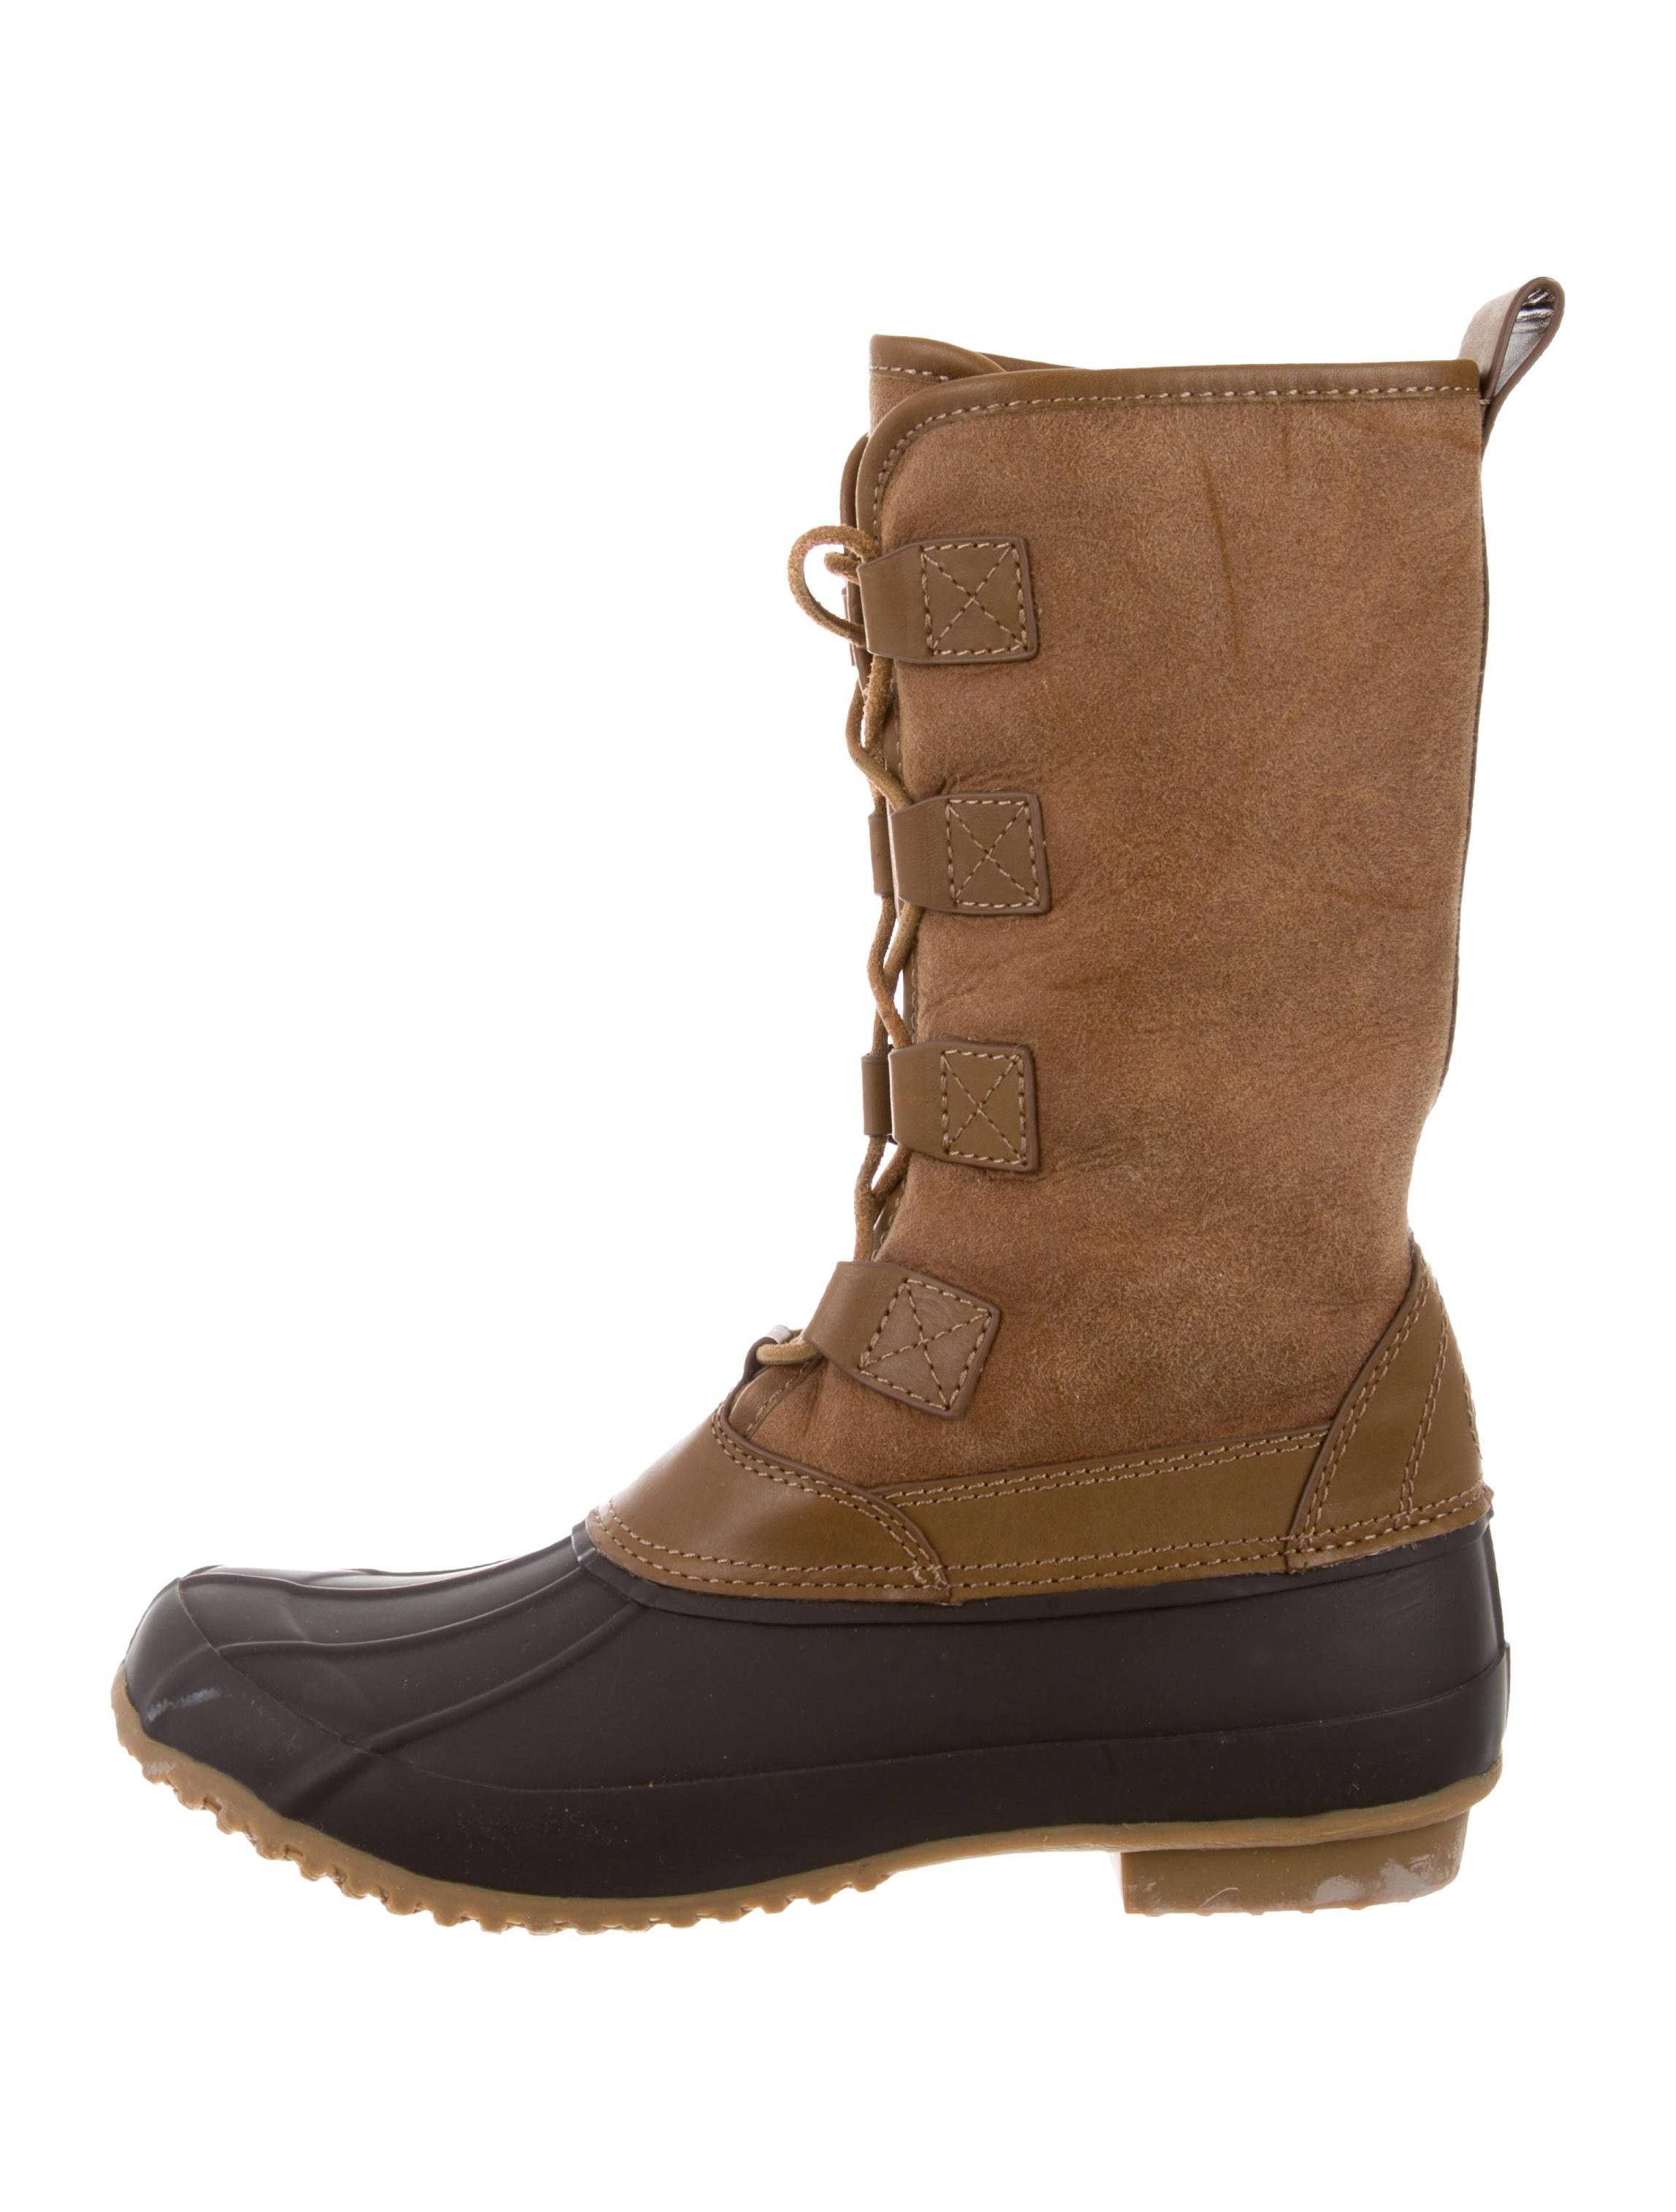 Tory Burch Lace-Tie Suede Duck Boots